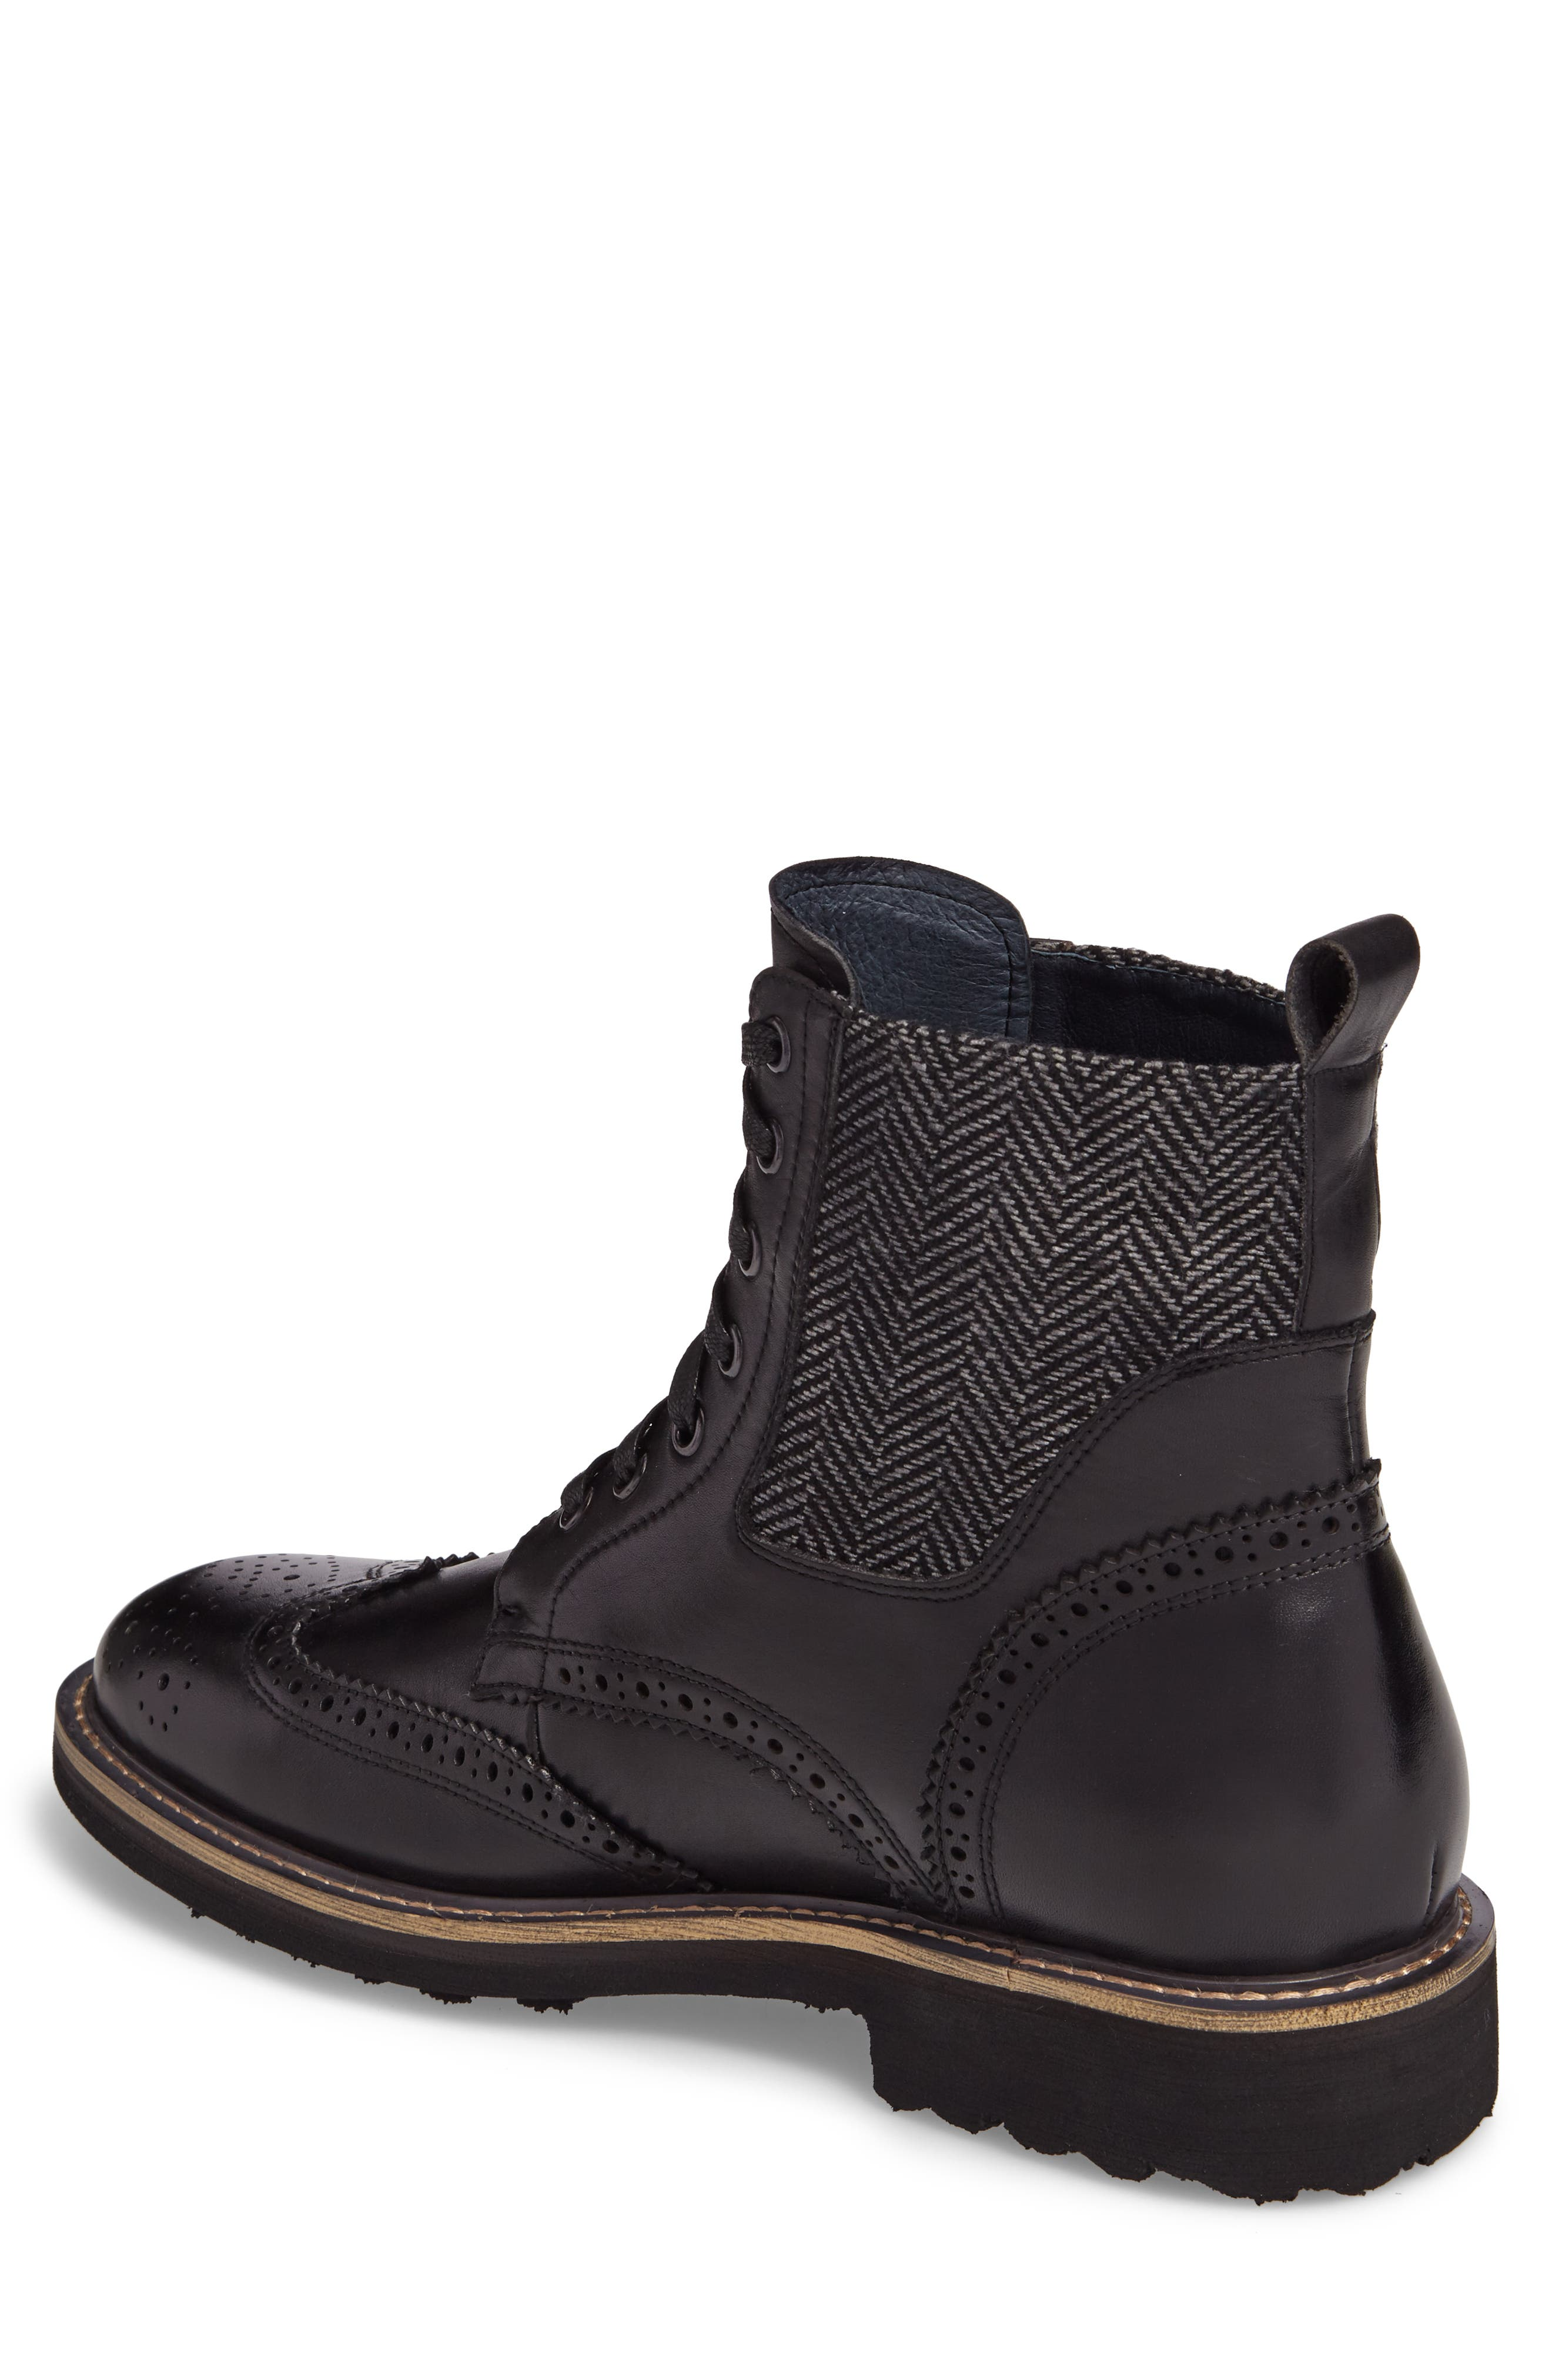 Farber Wingtip Boot,                             Alternate thumbnail 2, color,                             BLACK LEATHER